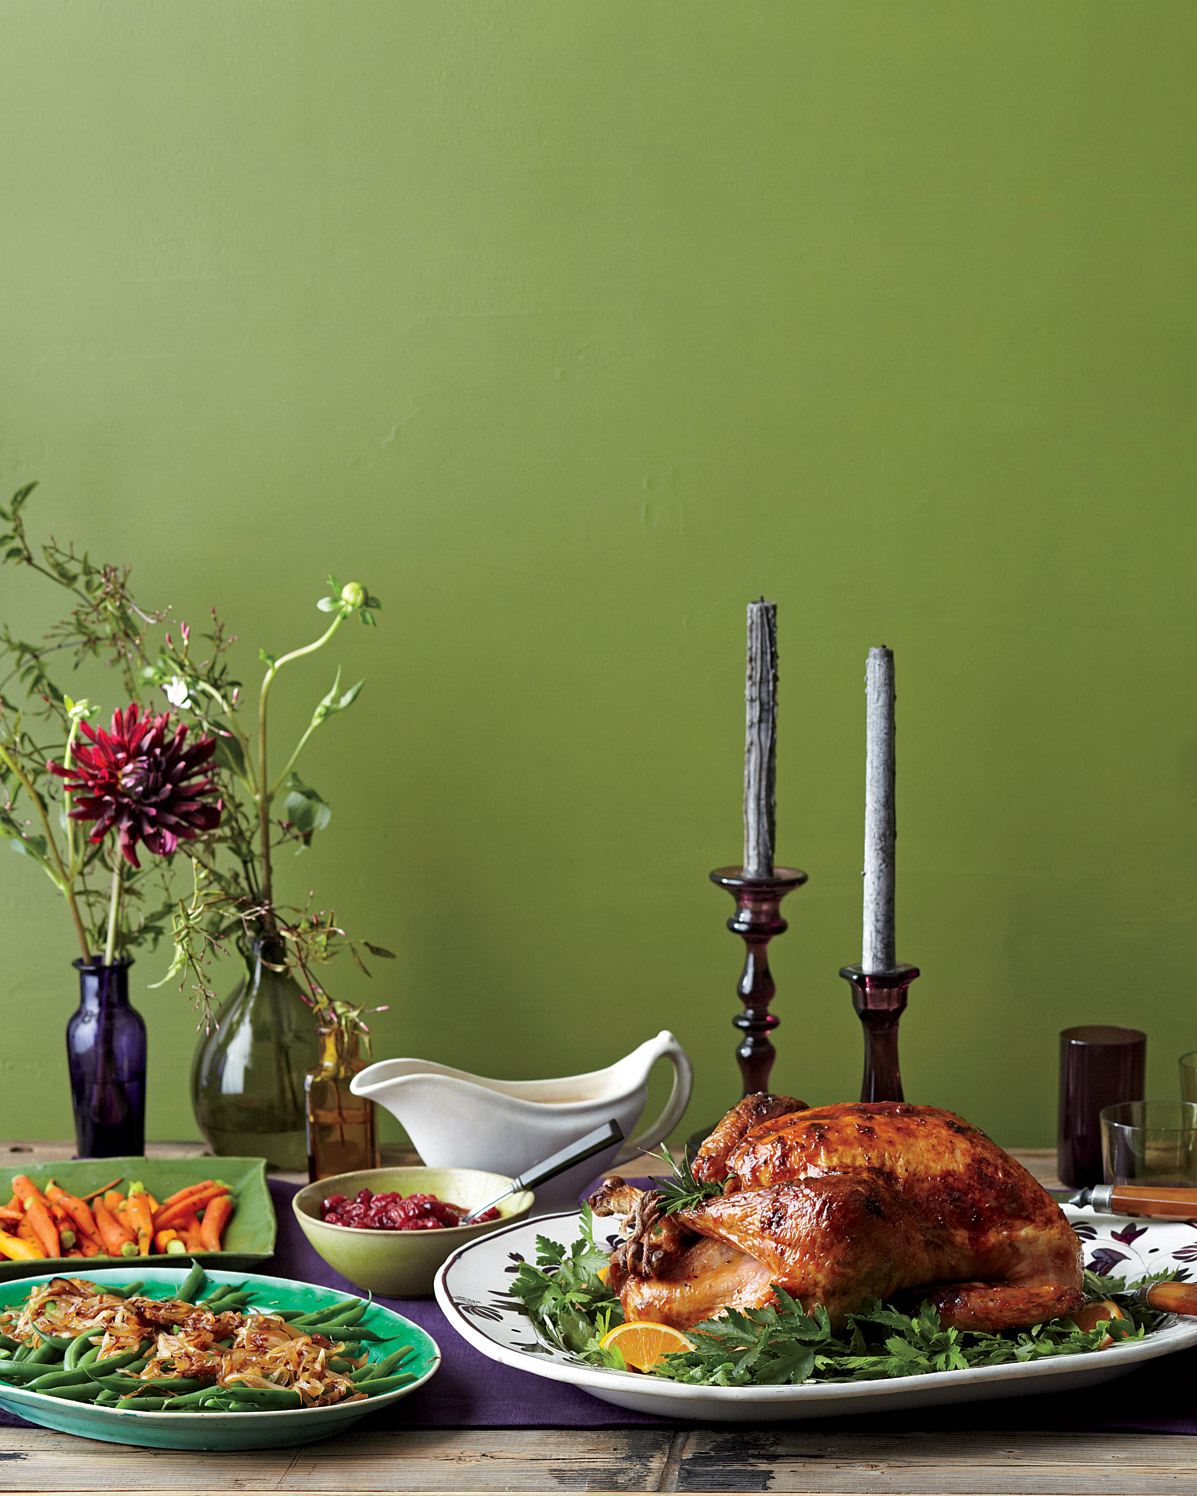 A Guide to Thanksgiving Etiquette for Hosts and Guests Alike